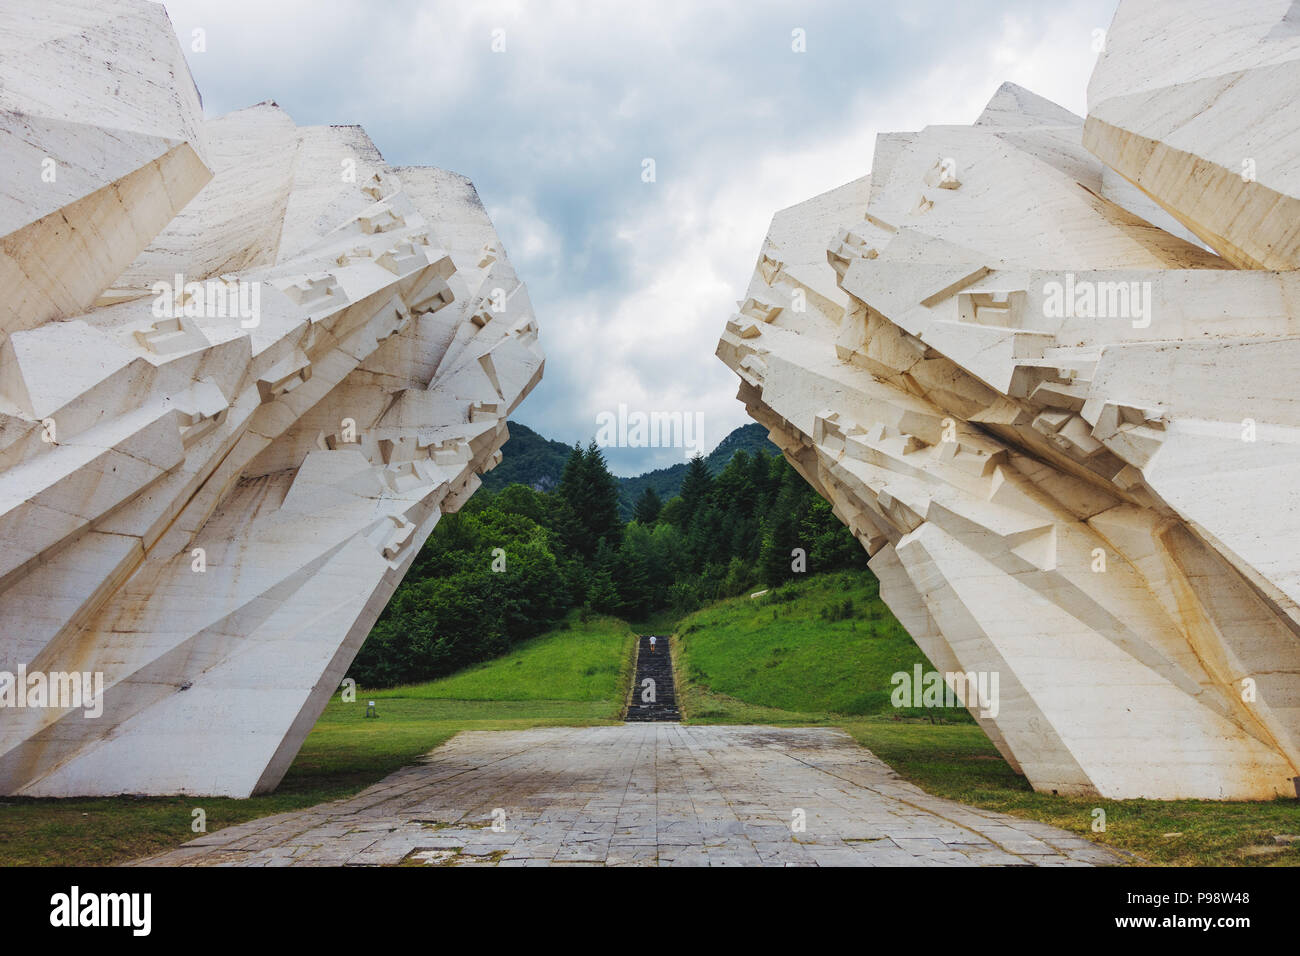 a gigantic, obscure white concrete spomenik (Yugoslav war memorial monument) sits in the Sutjeska National Park, Bosnia and Herzegovina - Stock Image